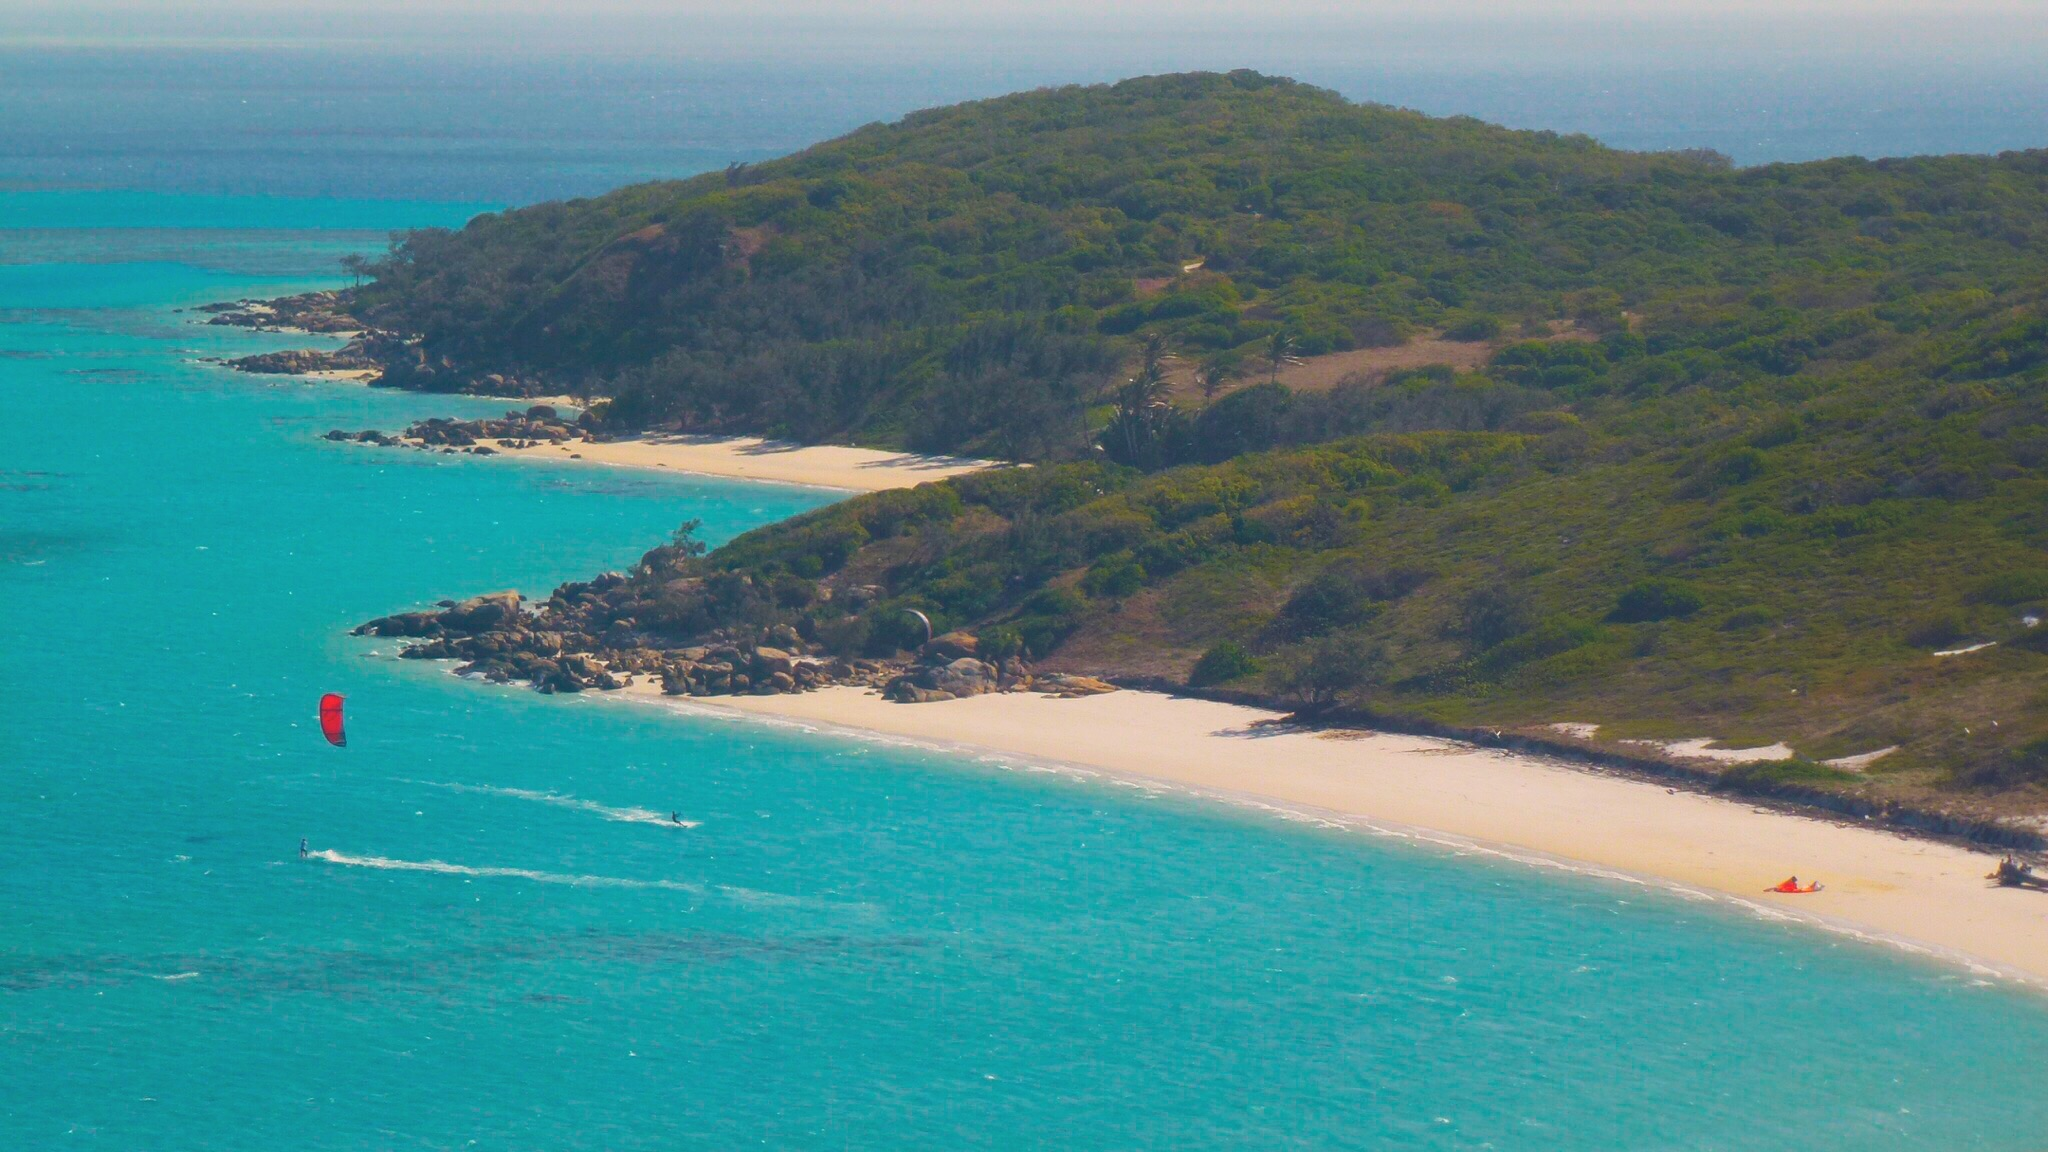 Lizard Island's stunning Blue Lagoon and Coconut Beach